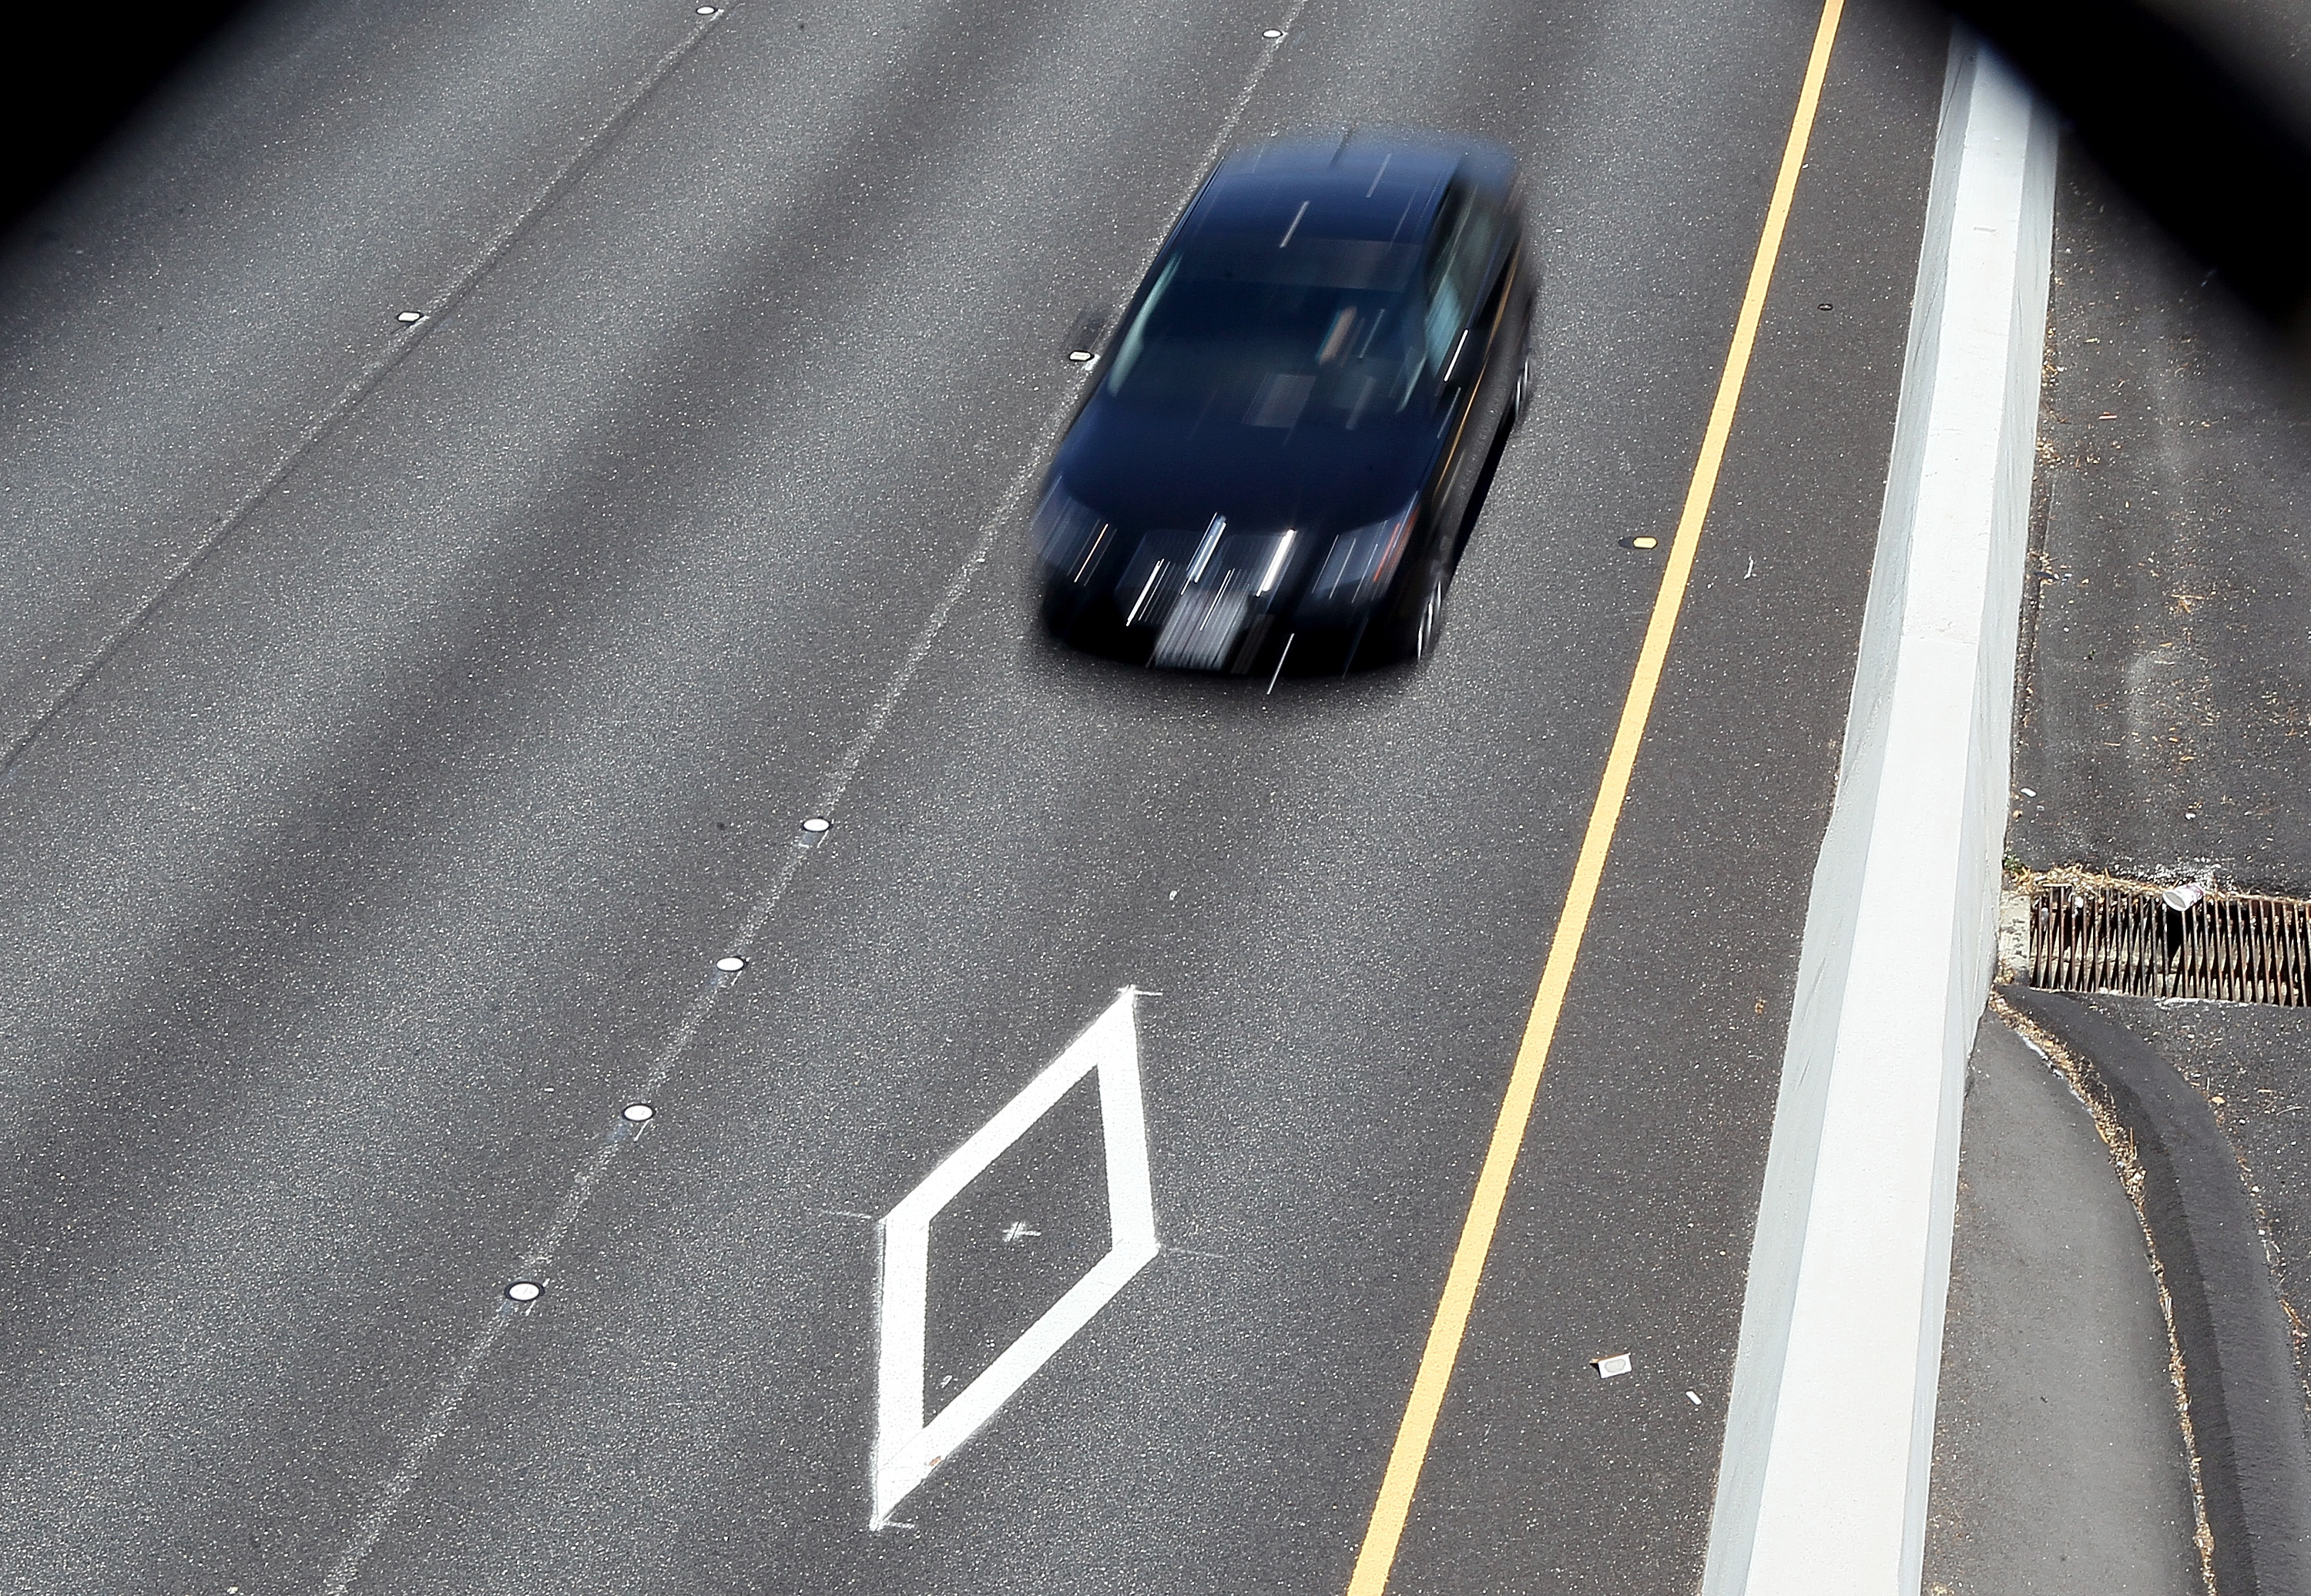 Carpool Lane Rules >> Rules For Carpool Lanes In California